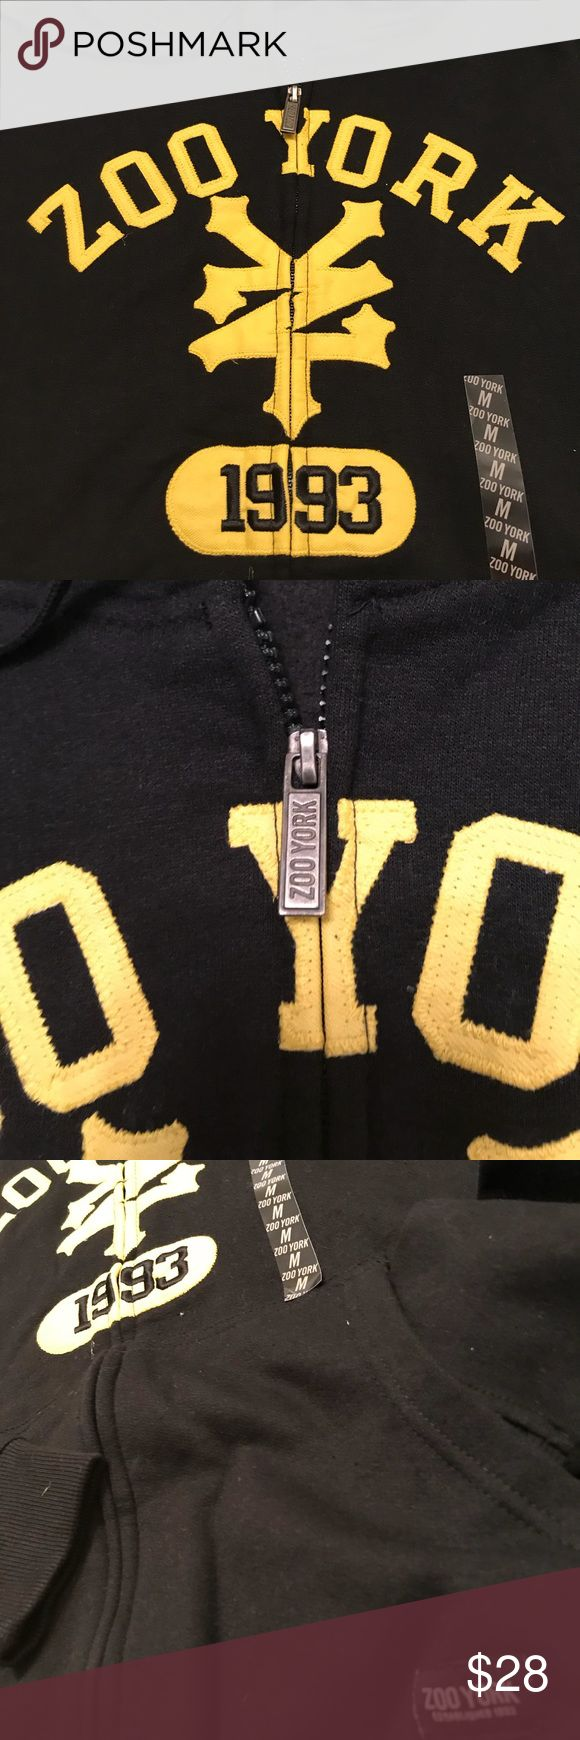 Zoo York Boys Zip Up Hoody Black/Yellow sz M Zoo York Boys Zip Up Hoody Black/Yellow sz M. This has been in our stored inventory for over 8yrs. Perfect condition Brand New with Tags. Hoody has stitched on logo and lettering. Room on the back for custom name. Perfect condition. Zoo York Shirts & Tops Sweatshirts & Hoodies